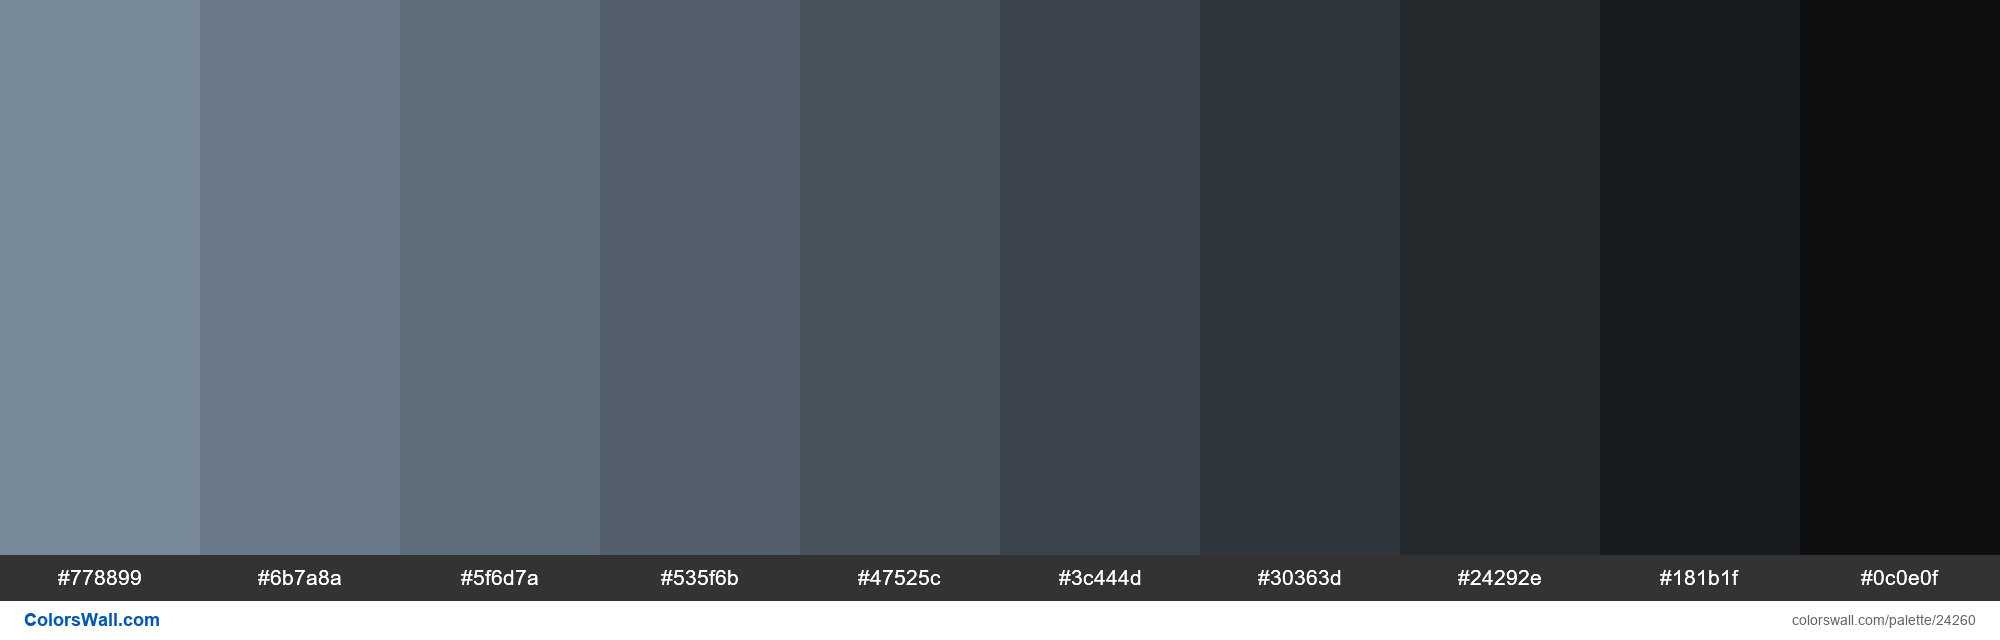 Shades of Light Slate Grey #778899 hex color - #24260